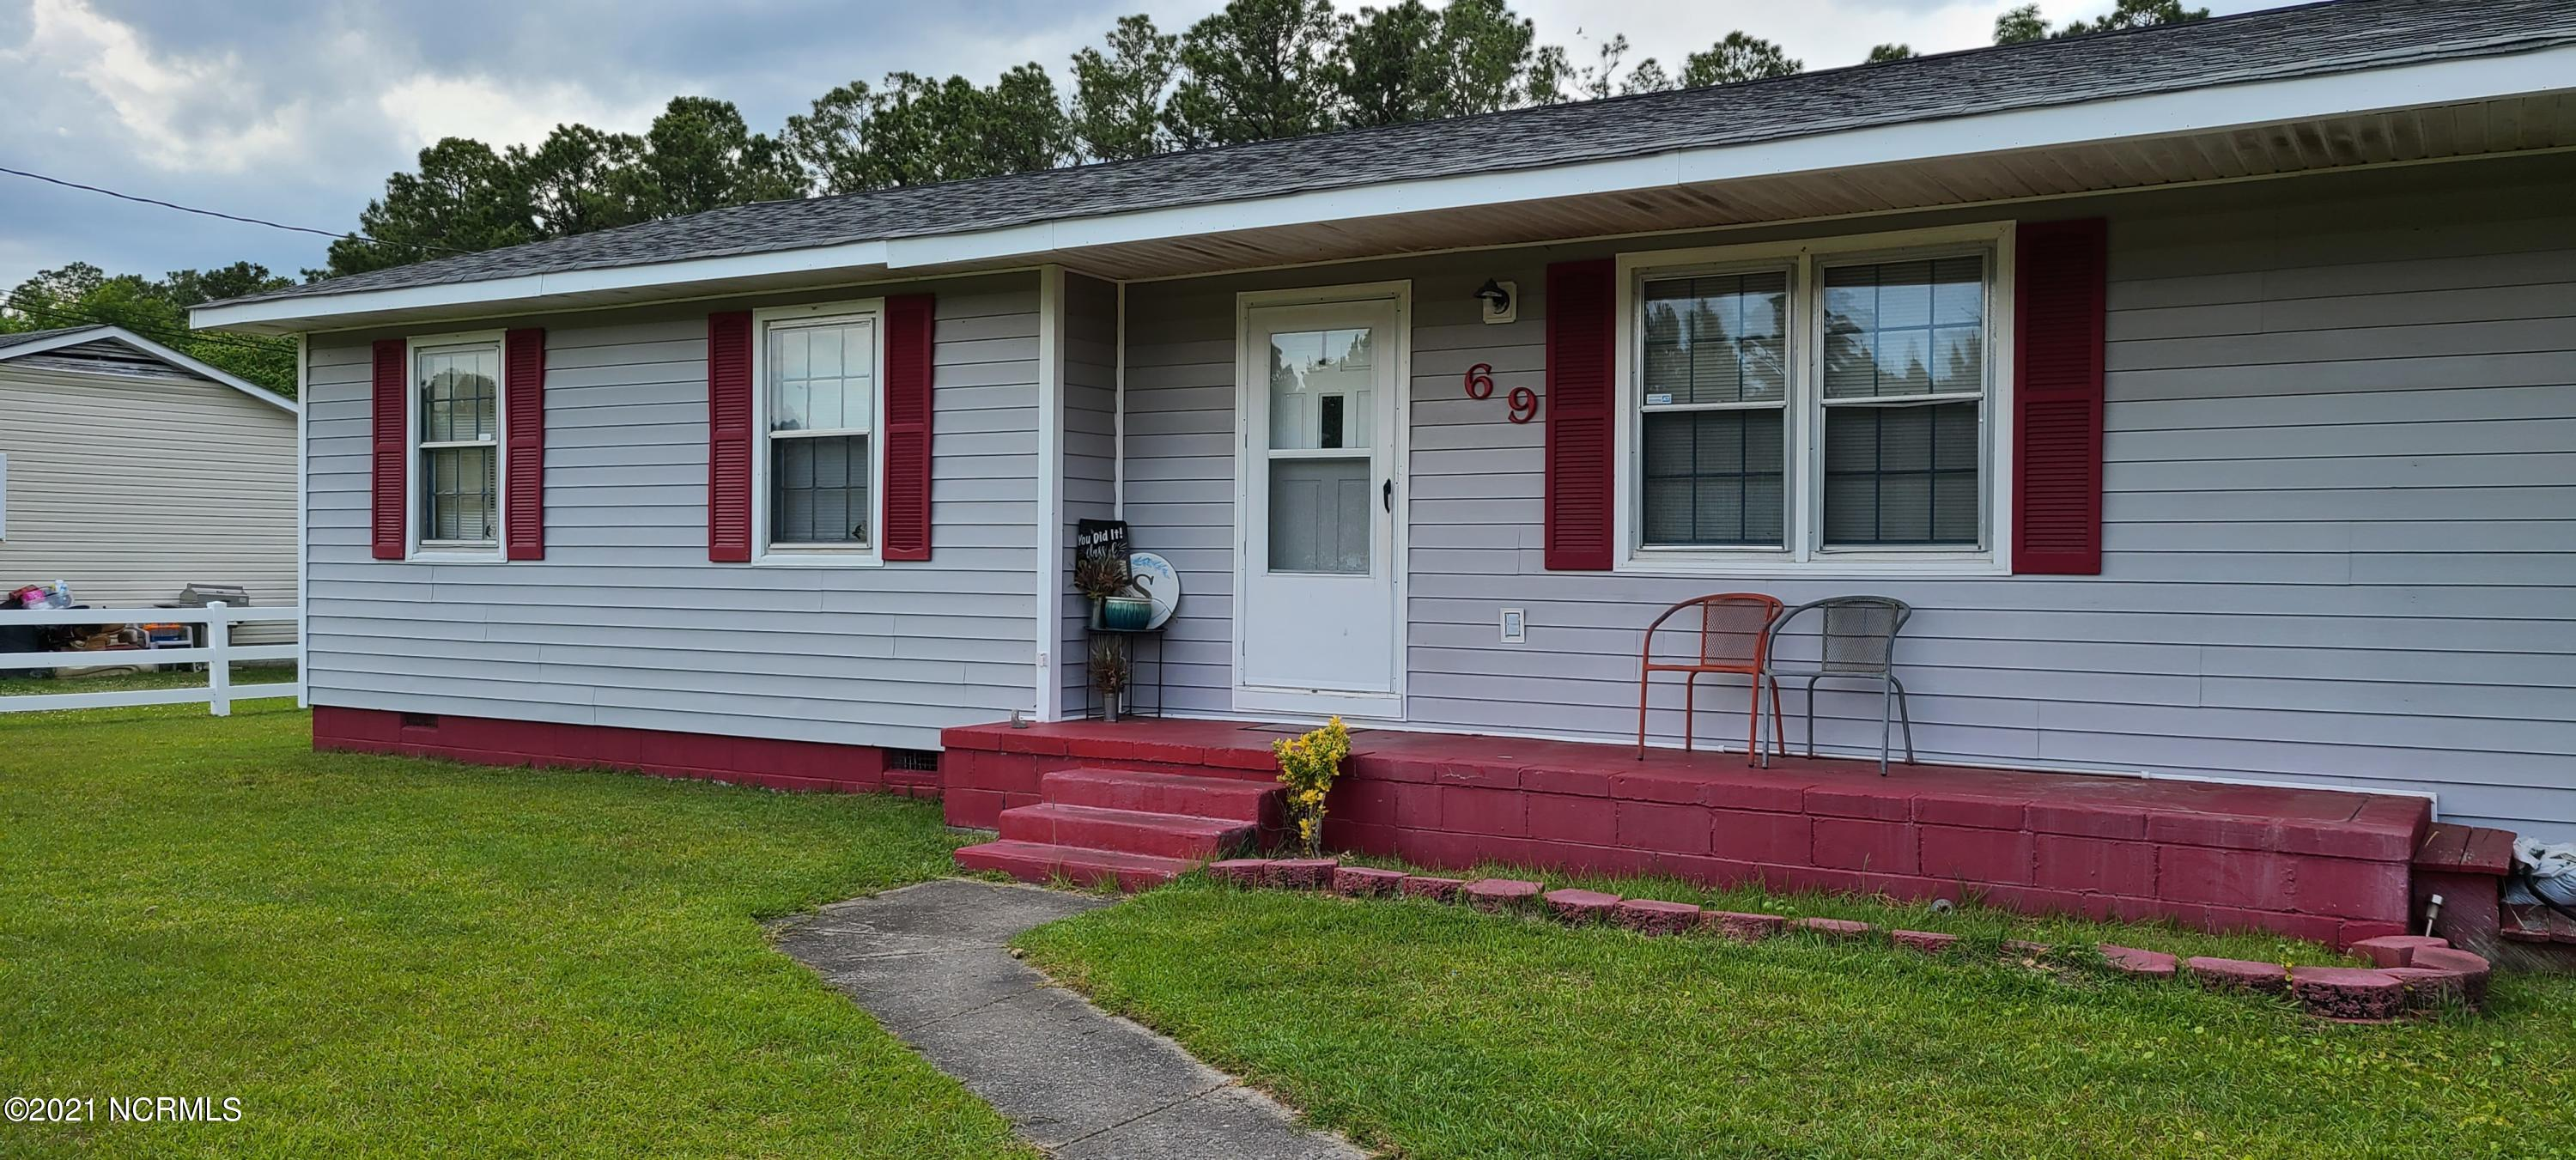 Darling 3 bedroom/2 bath home, just minutes from beaches, shopping and bases.  This home features a fully fenced backyard with a shed.  Inside, the home offers a kitchen with a nook, crown molding, and a bonus room.  No City Taxes.  Seller is offering 3K in flooring/use as you choose.